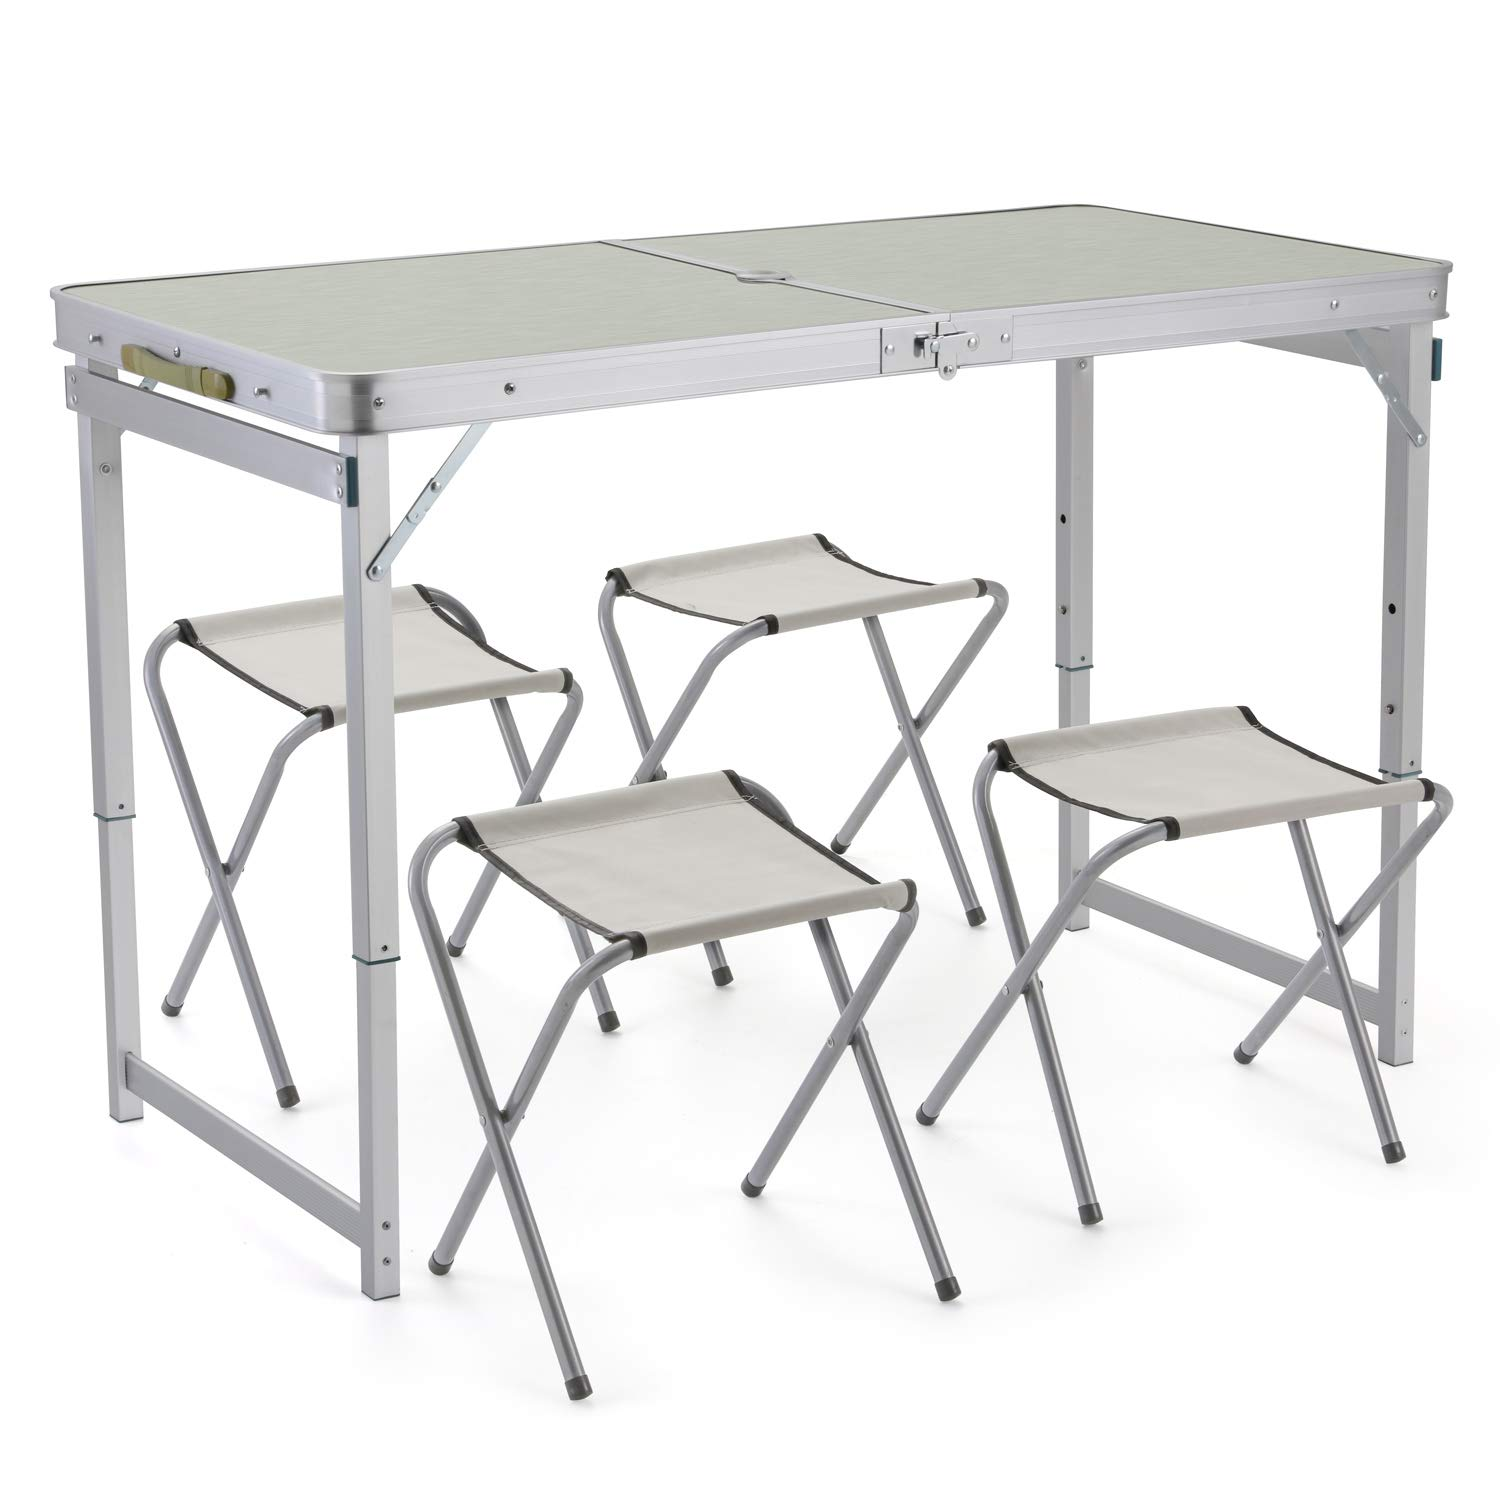 Sunkorto 4-Person Folding Picnic Table with 4 Stools, 4 Feet Aluminum Table Chair Set Heights Adjustable, Portable and Lightweight for Outdoor, Camping, Dining, BBQ Party by Sunkorto